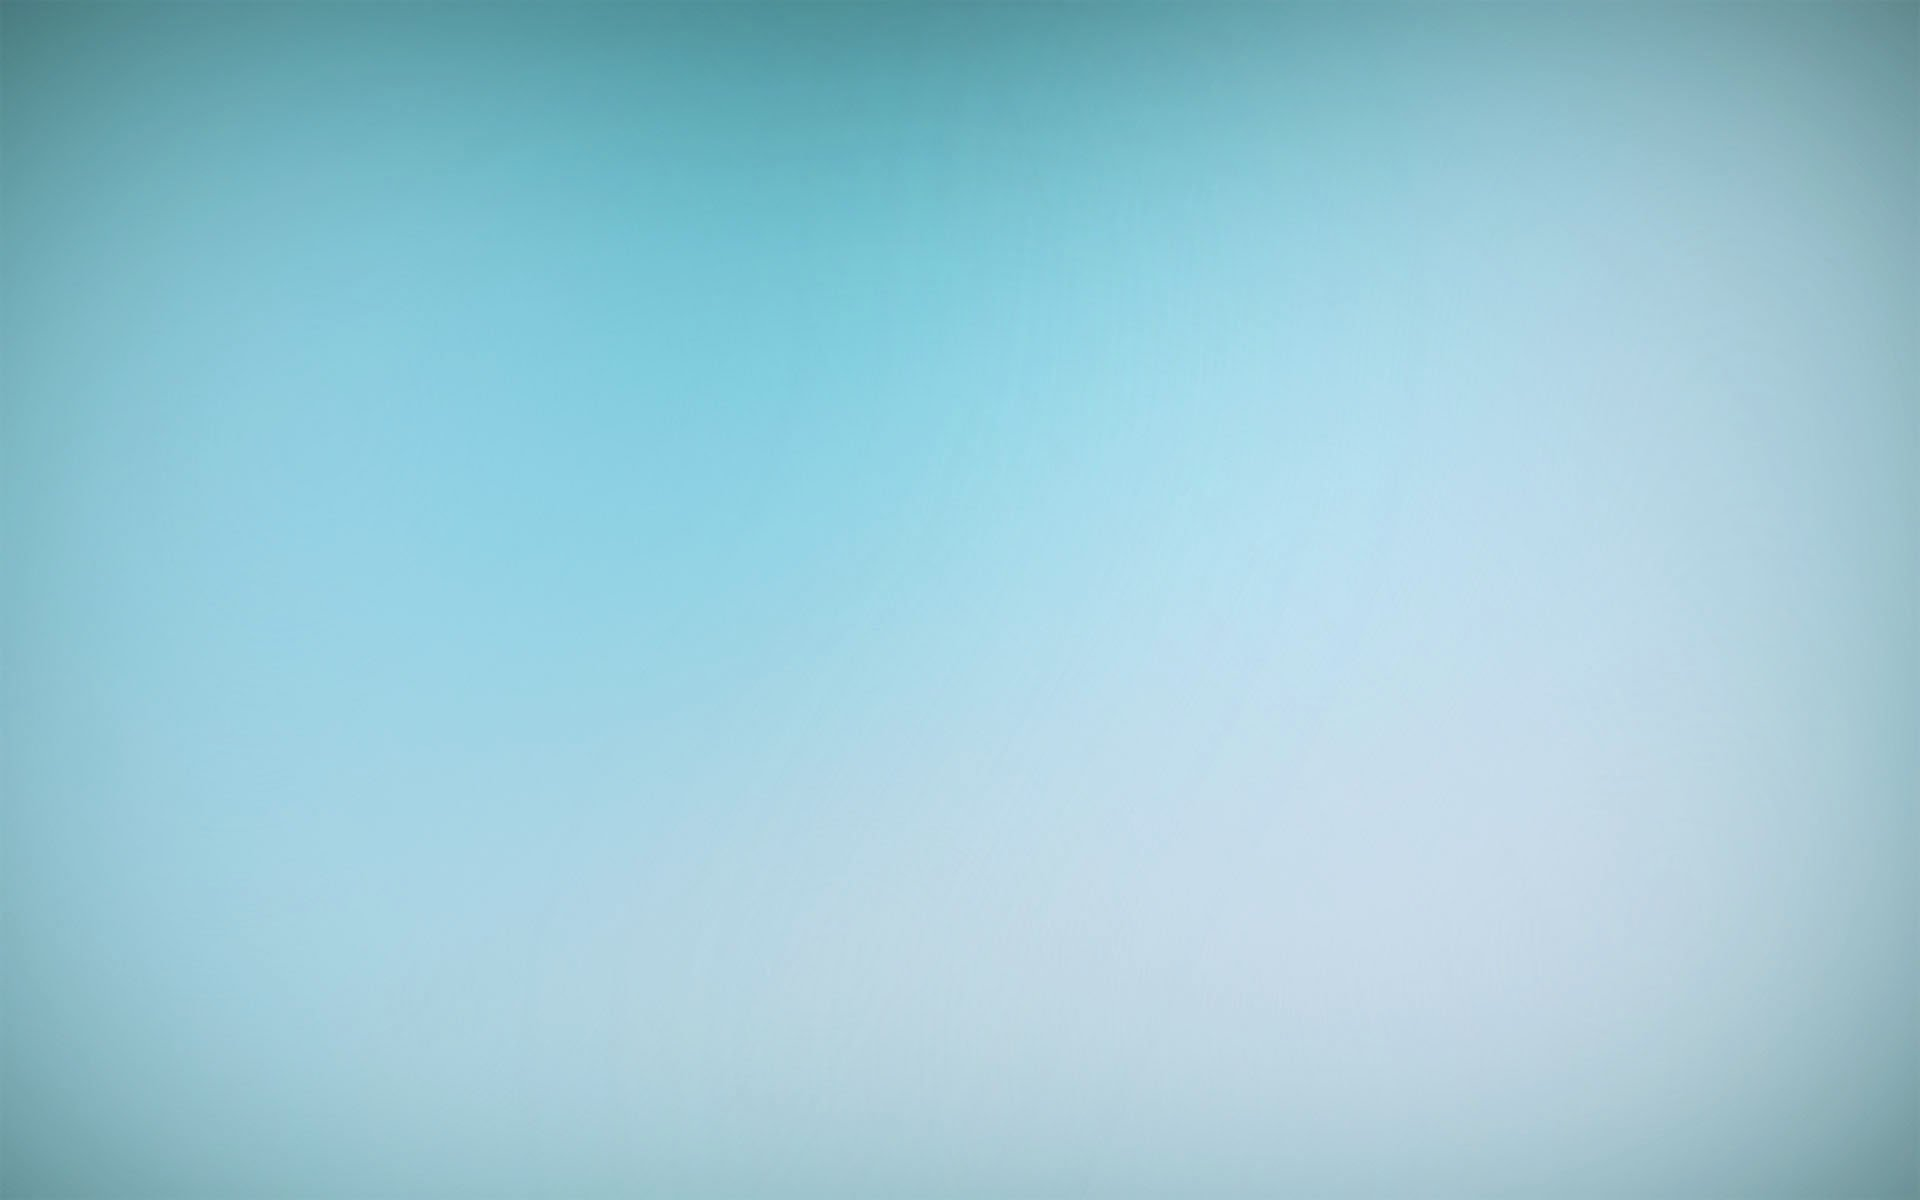 Business Clean CyanBlue   Cool Twitter Backgrounds 1920x1200